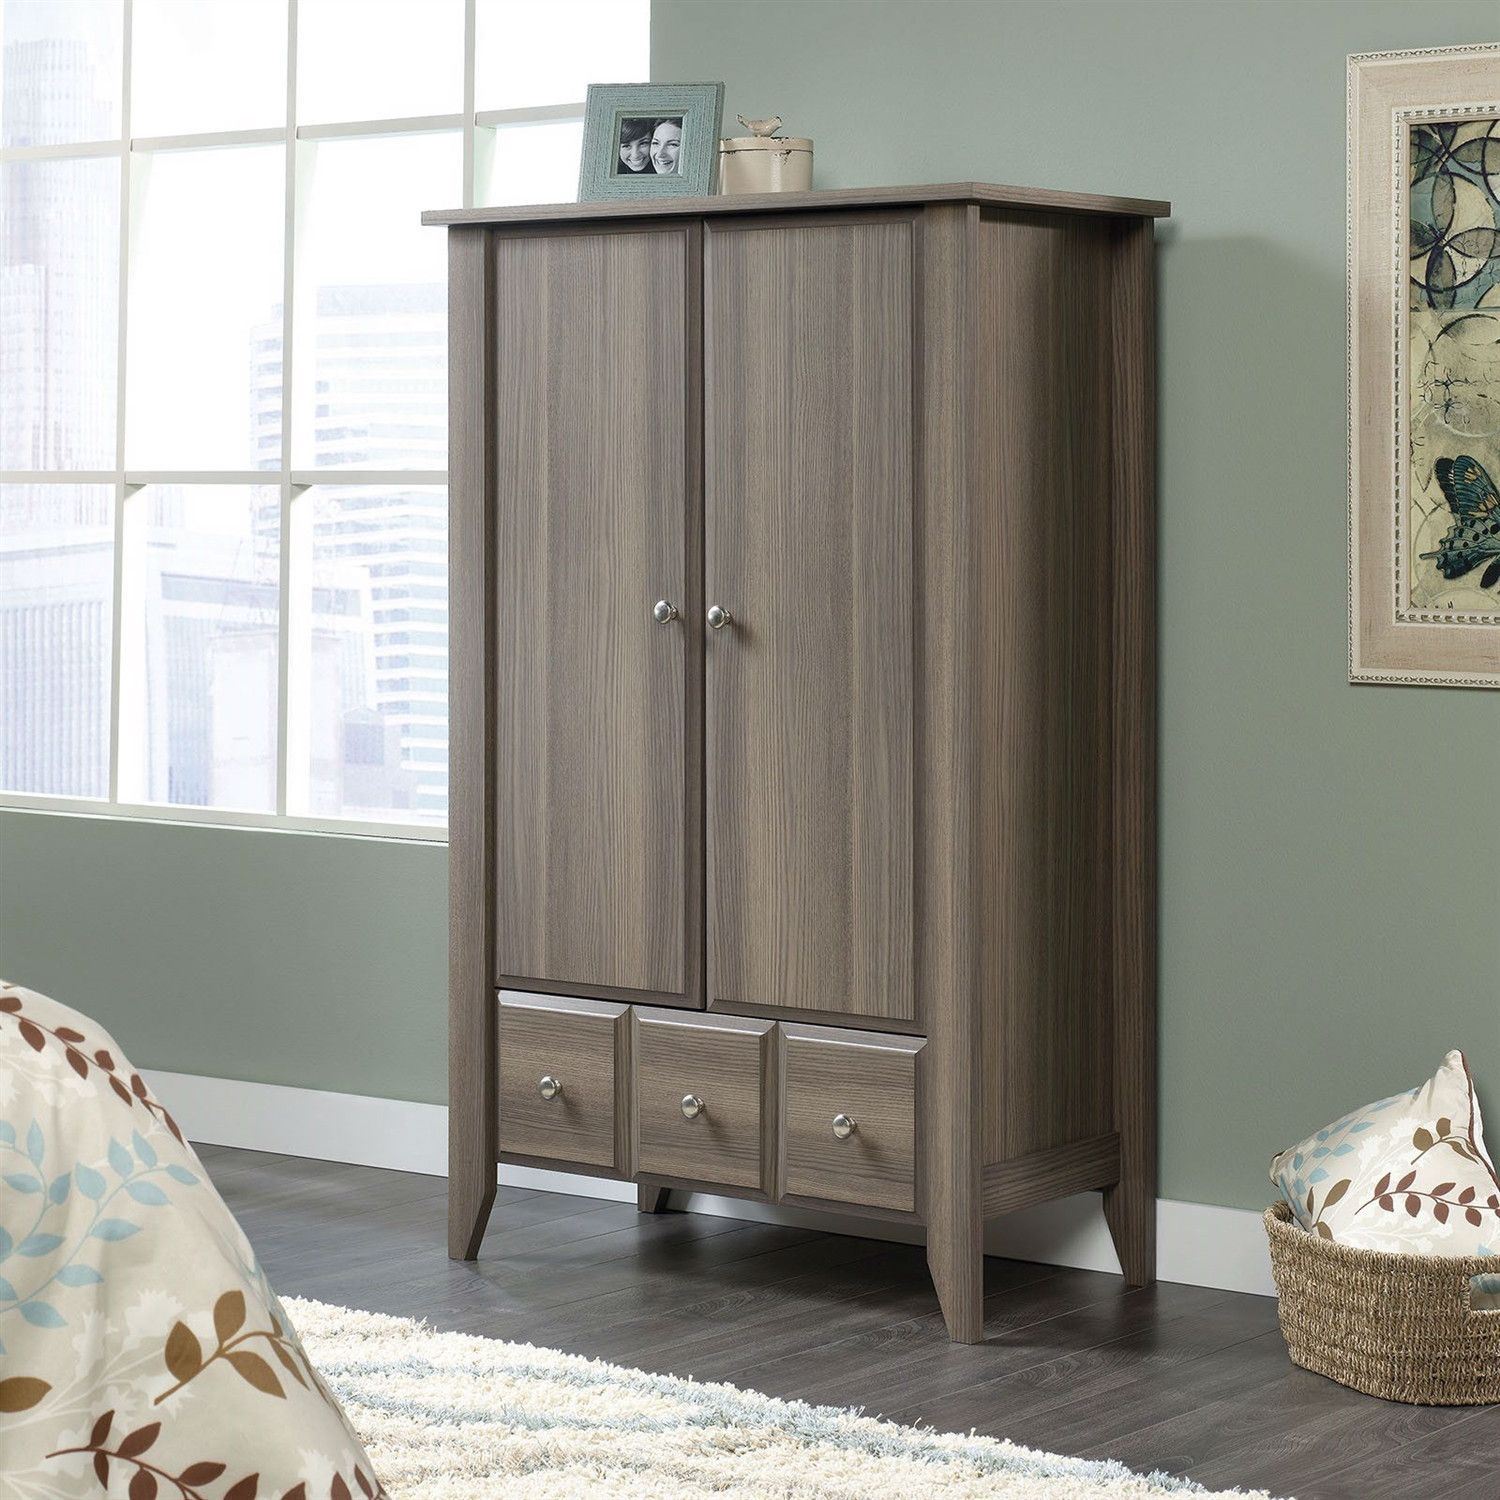 Keep Your Wardrobe Organized And Stored Properly With This Bedroom Wardrobe  Armoire Storage Cabinet In Ash Wood Finish. Featuring One Large Bottom  Drawer ...